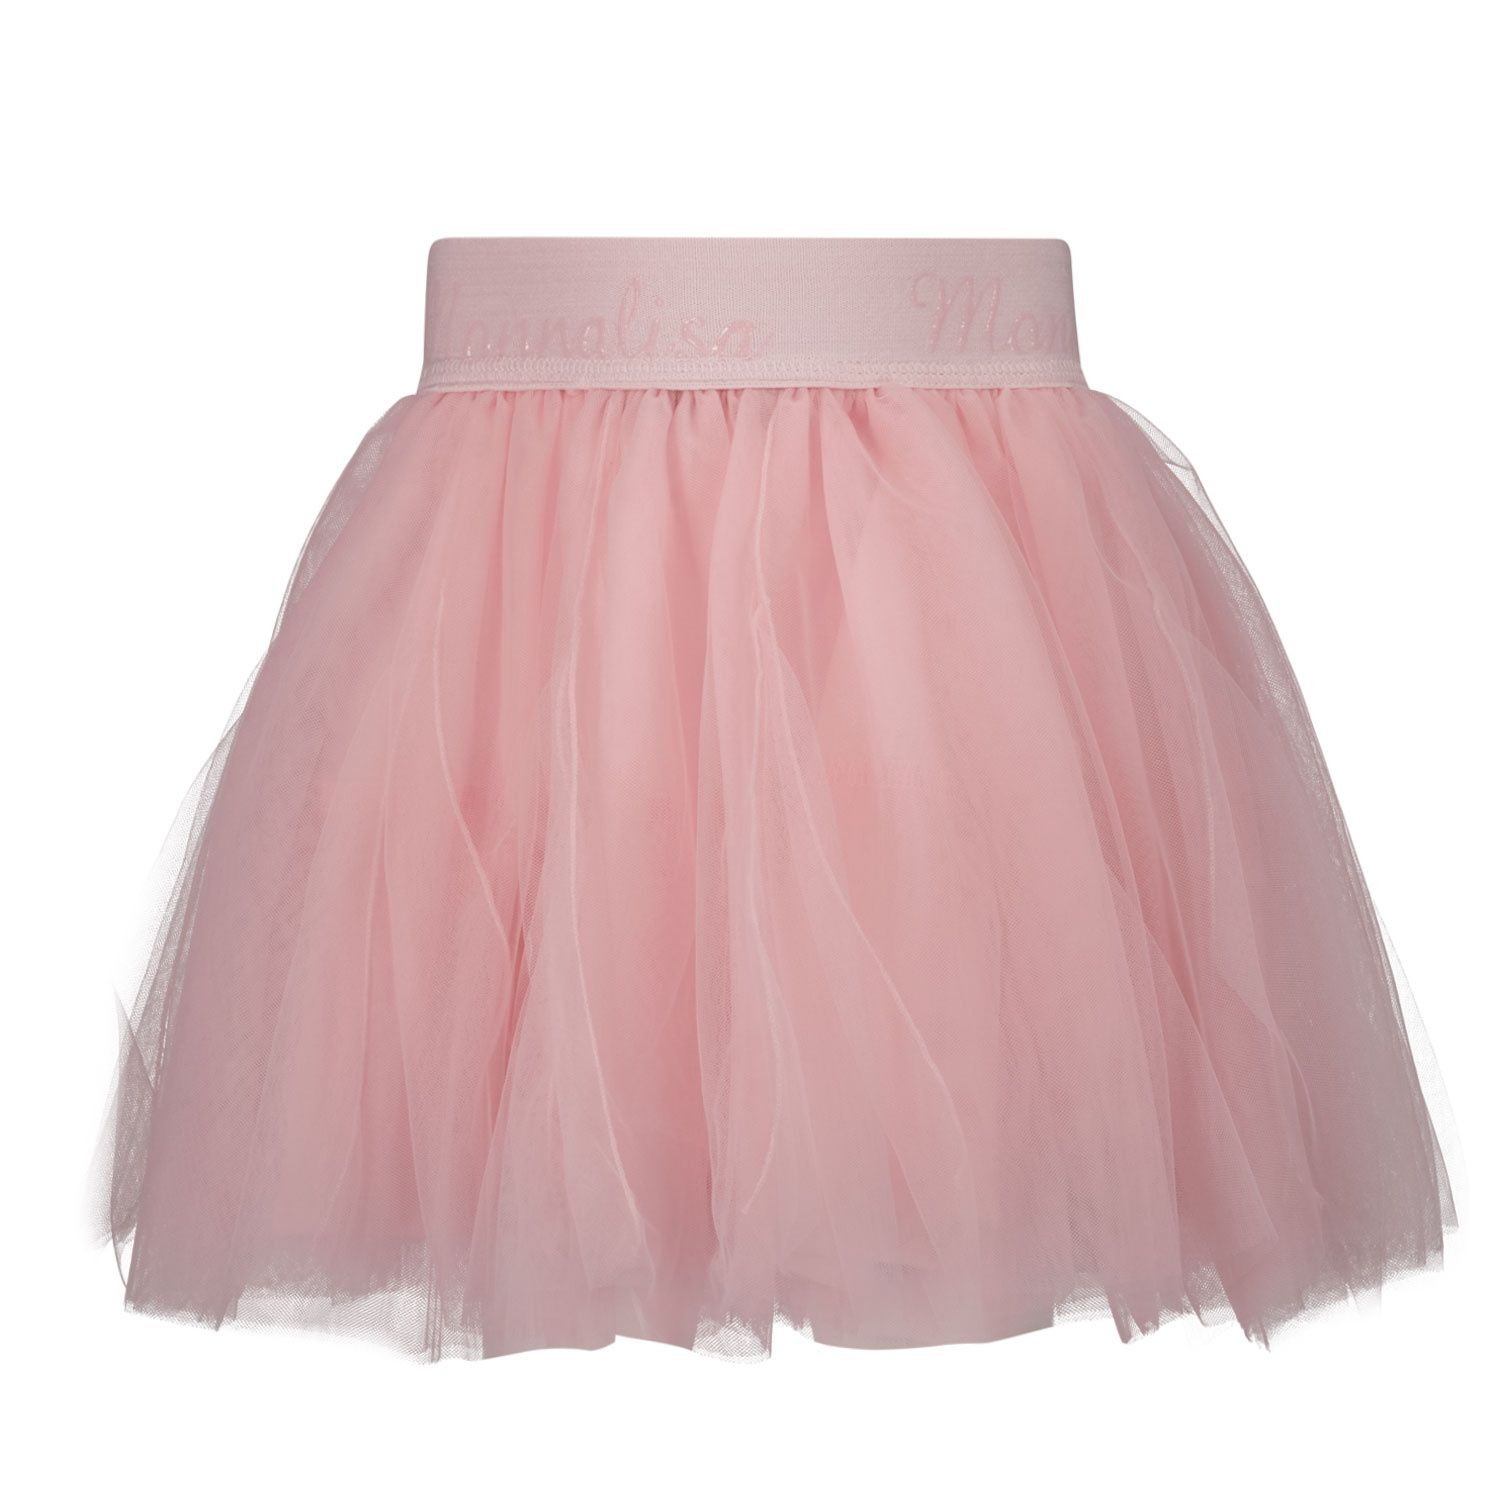 Picture of MonnaLisa 378GON baby skirt light pink